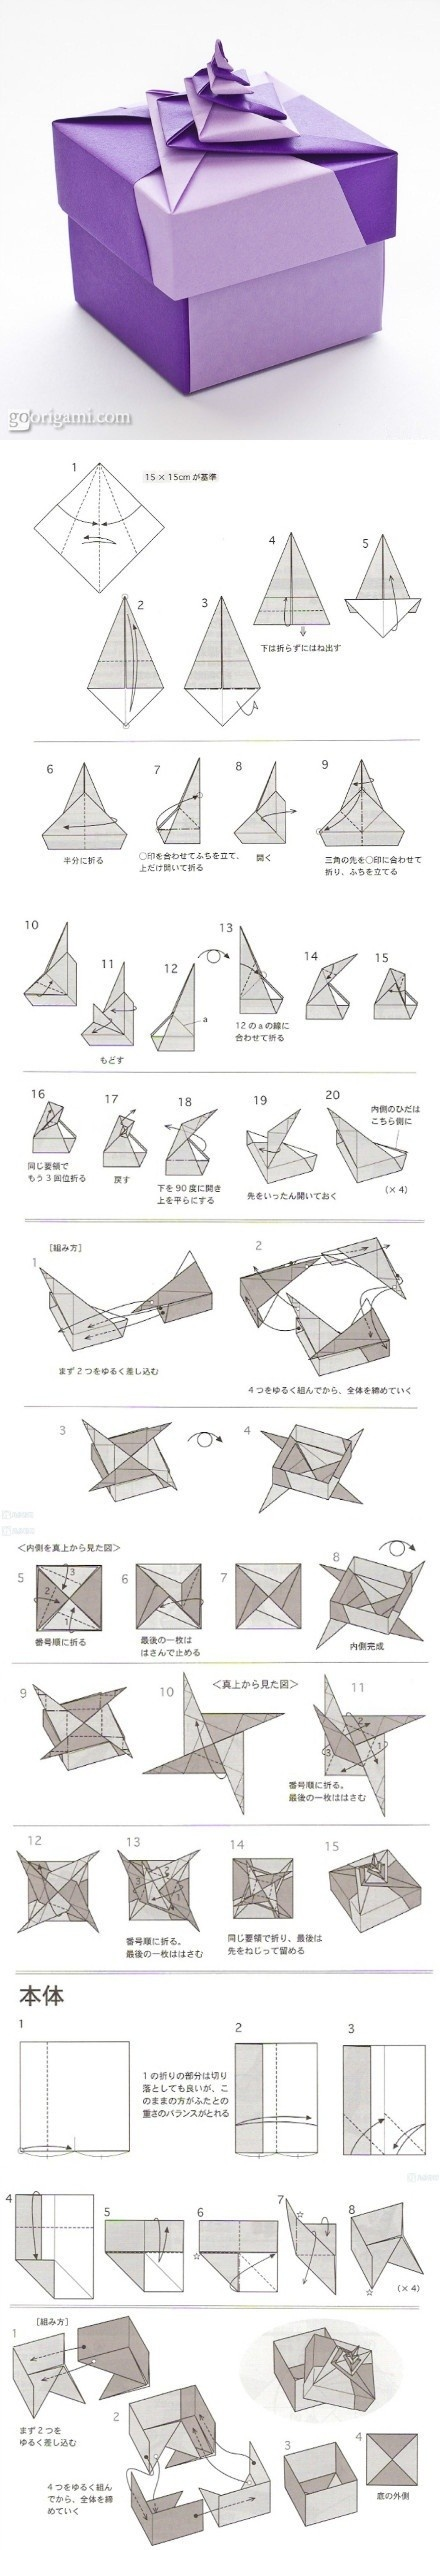 Cool Origami Spiral Top Box By Tomoko Fuse Diagrams In Chinese Wiring Cloud Oideiuggs Outletorg